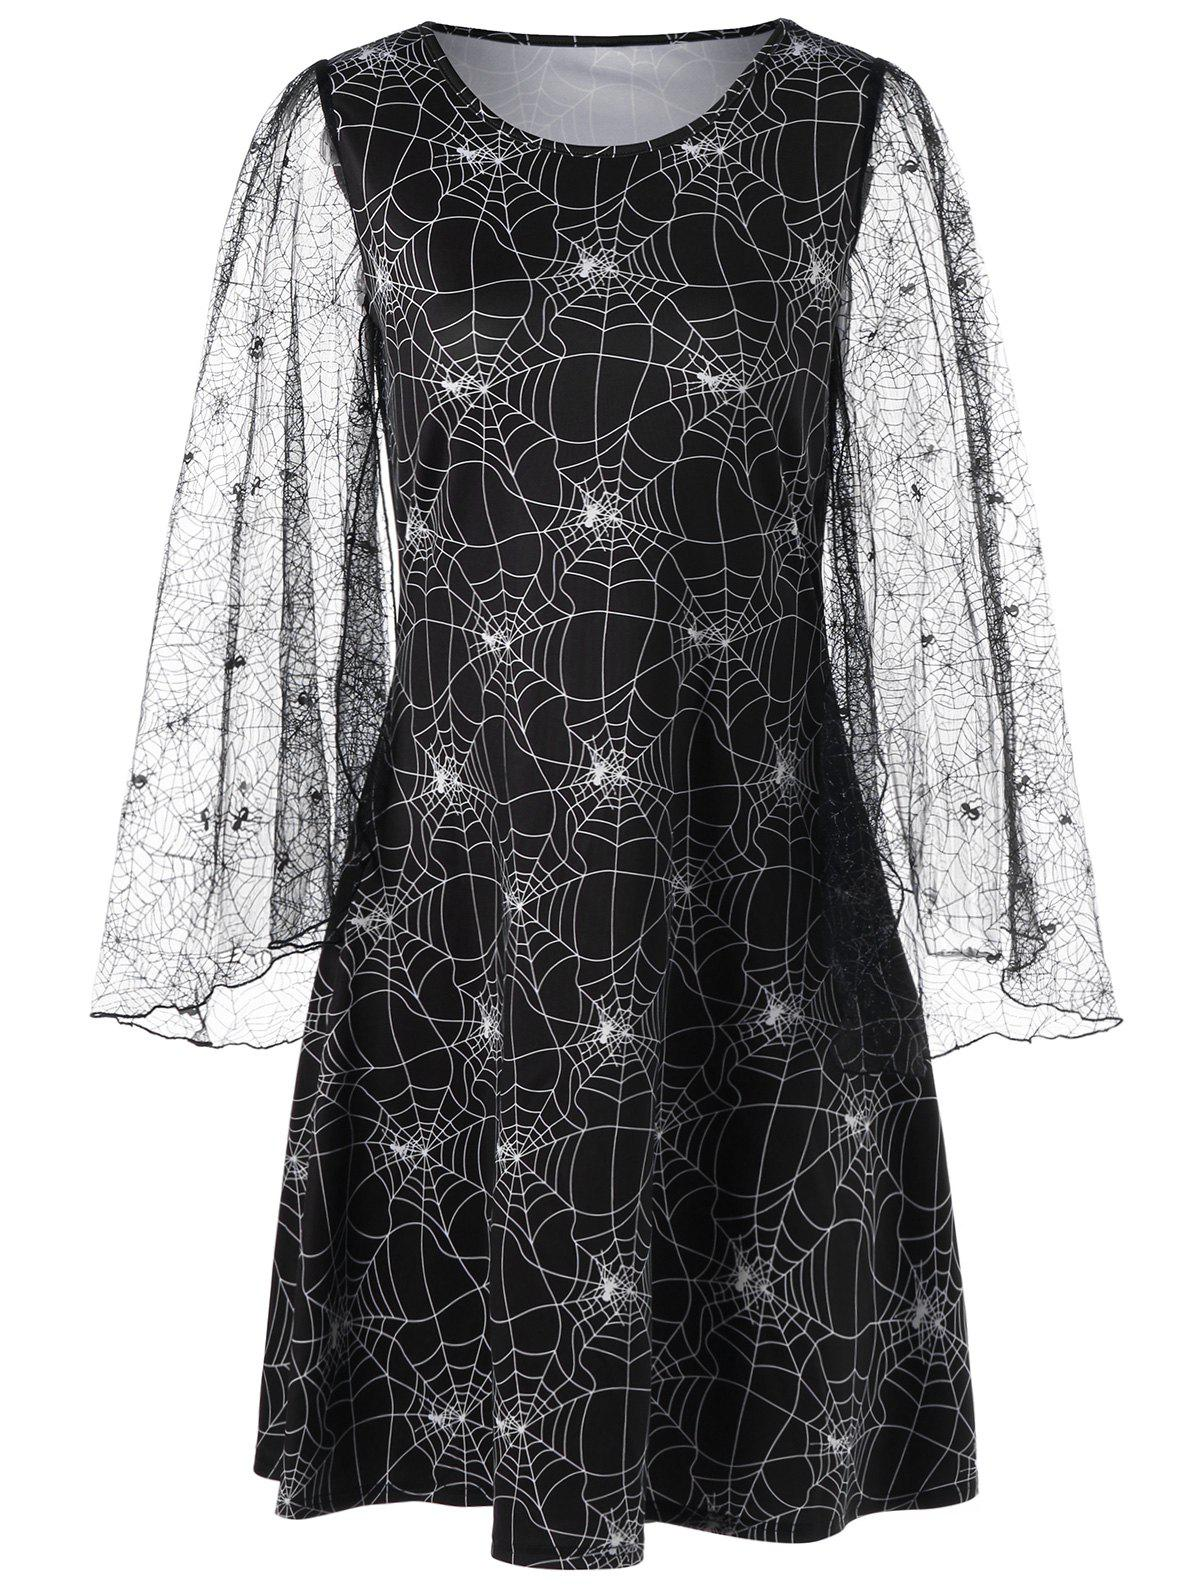 Halloween Lace Sleeve Spider Web Print Dress -